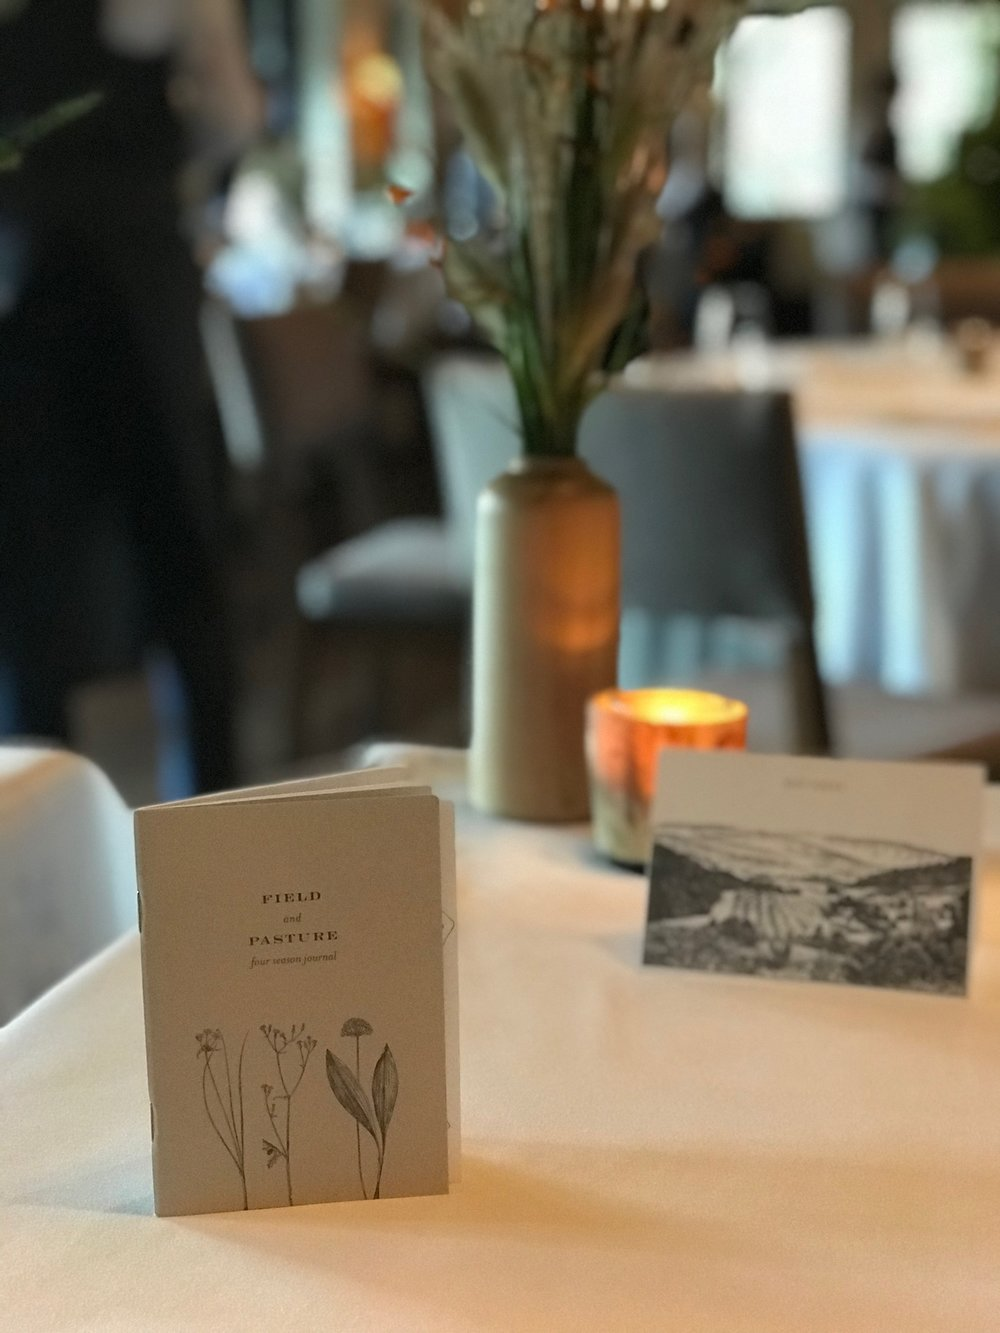 There is no menu at Stone Barns, so each diner gets a slightly different meal.